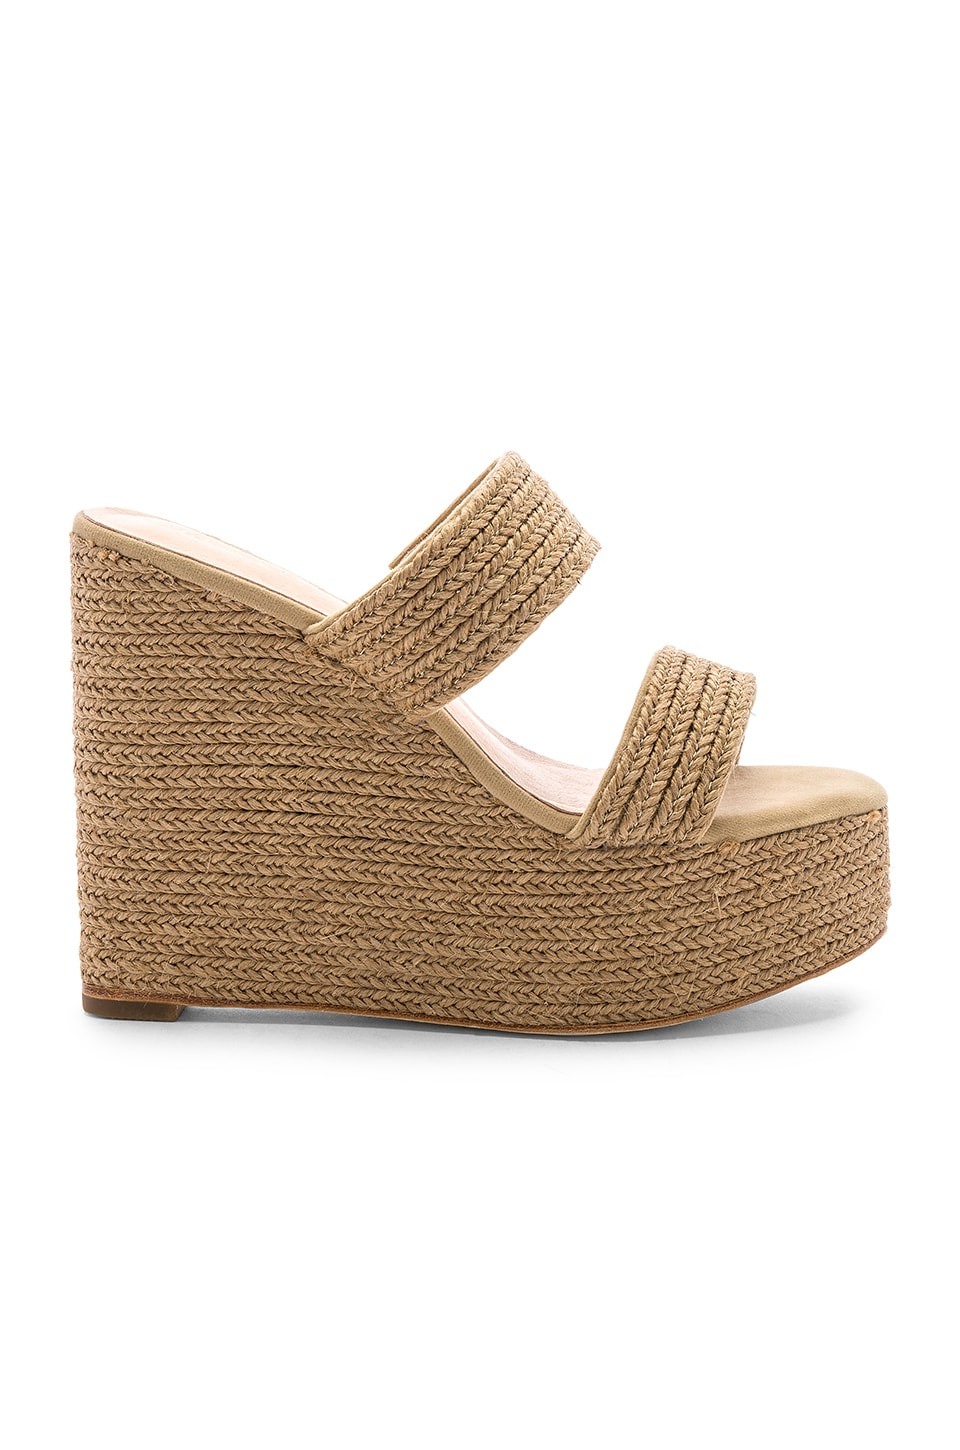 RAYE Islander Heel in Natural